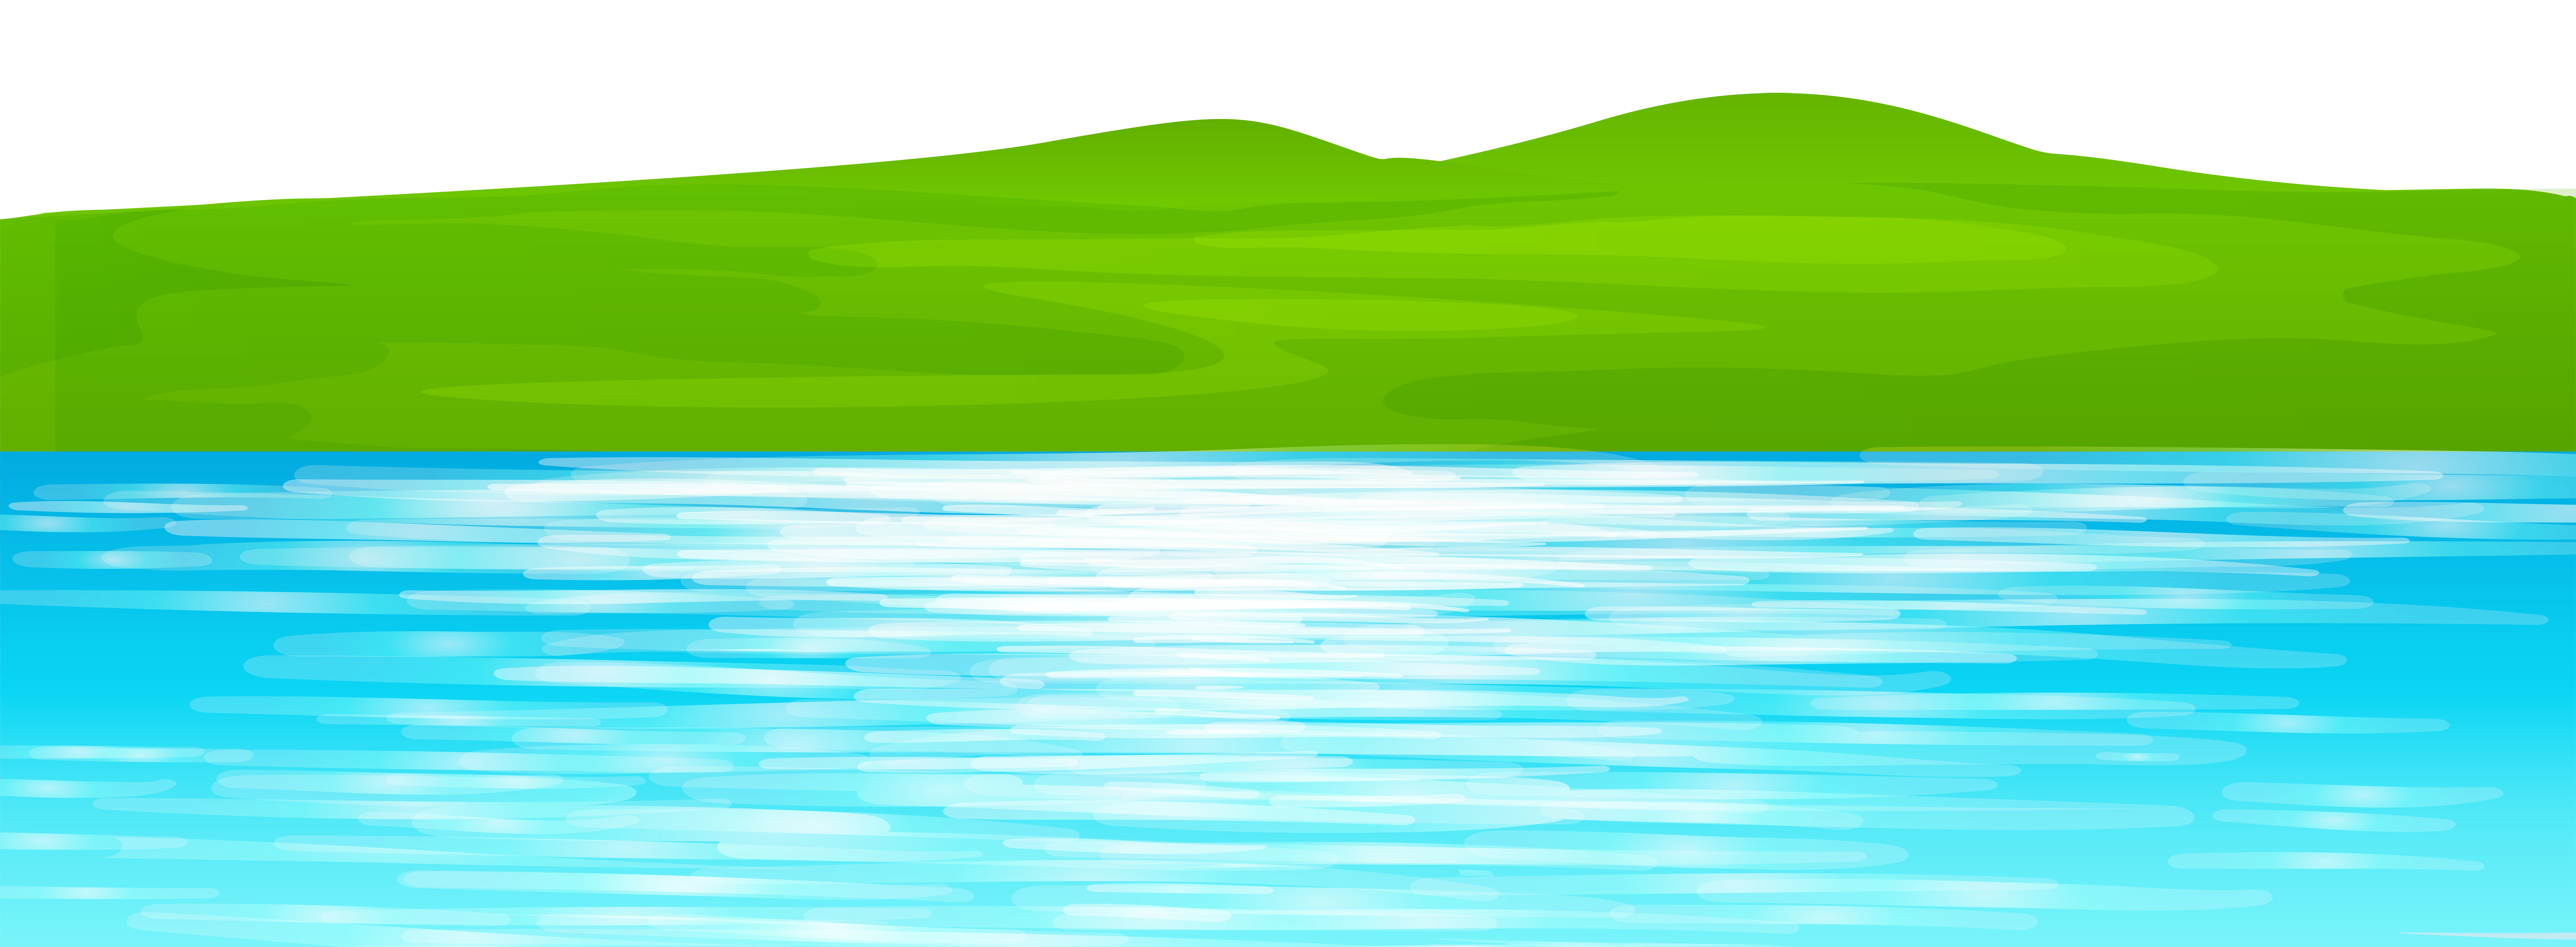 Lake clipart ground. Water resources green swimming